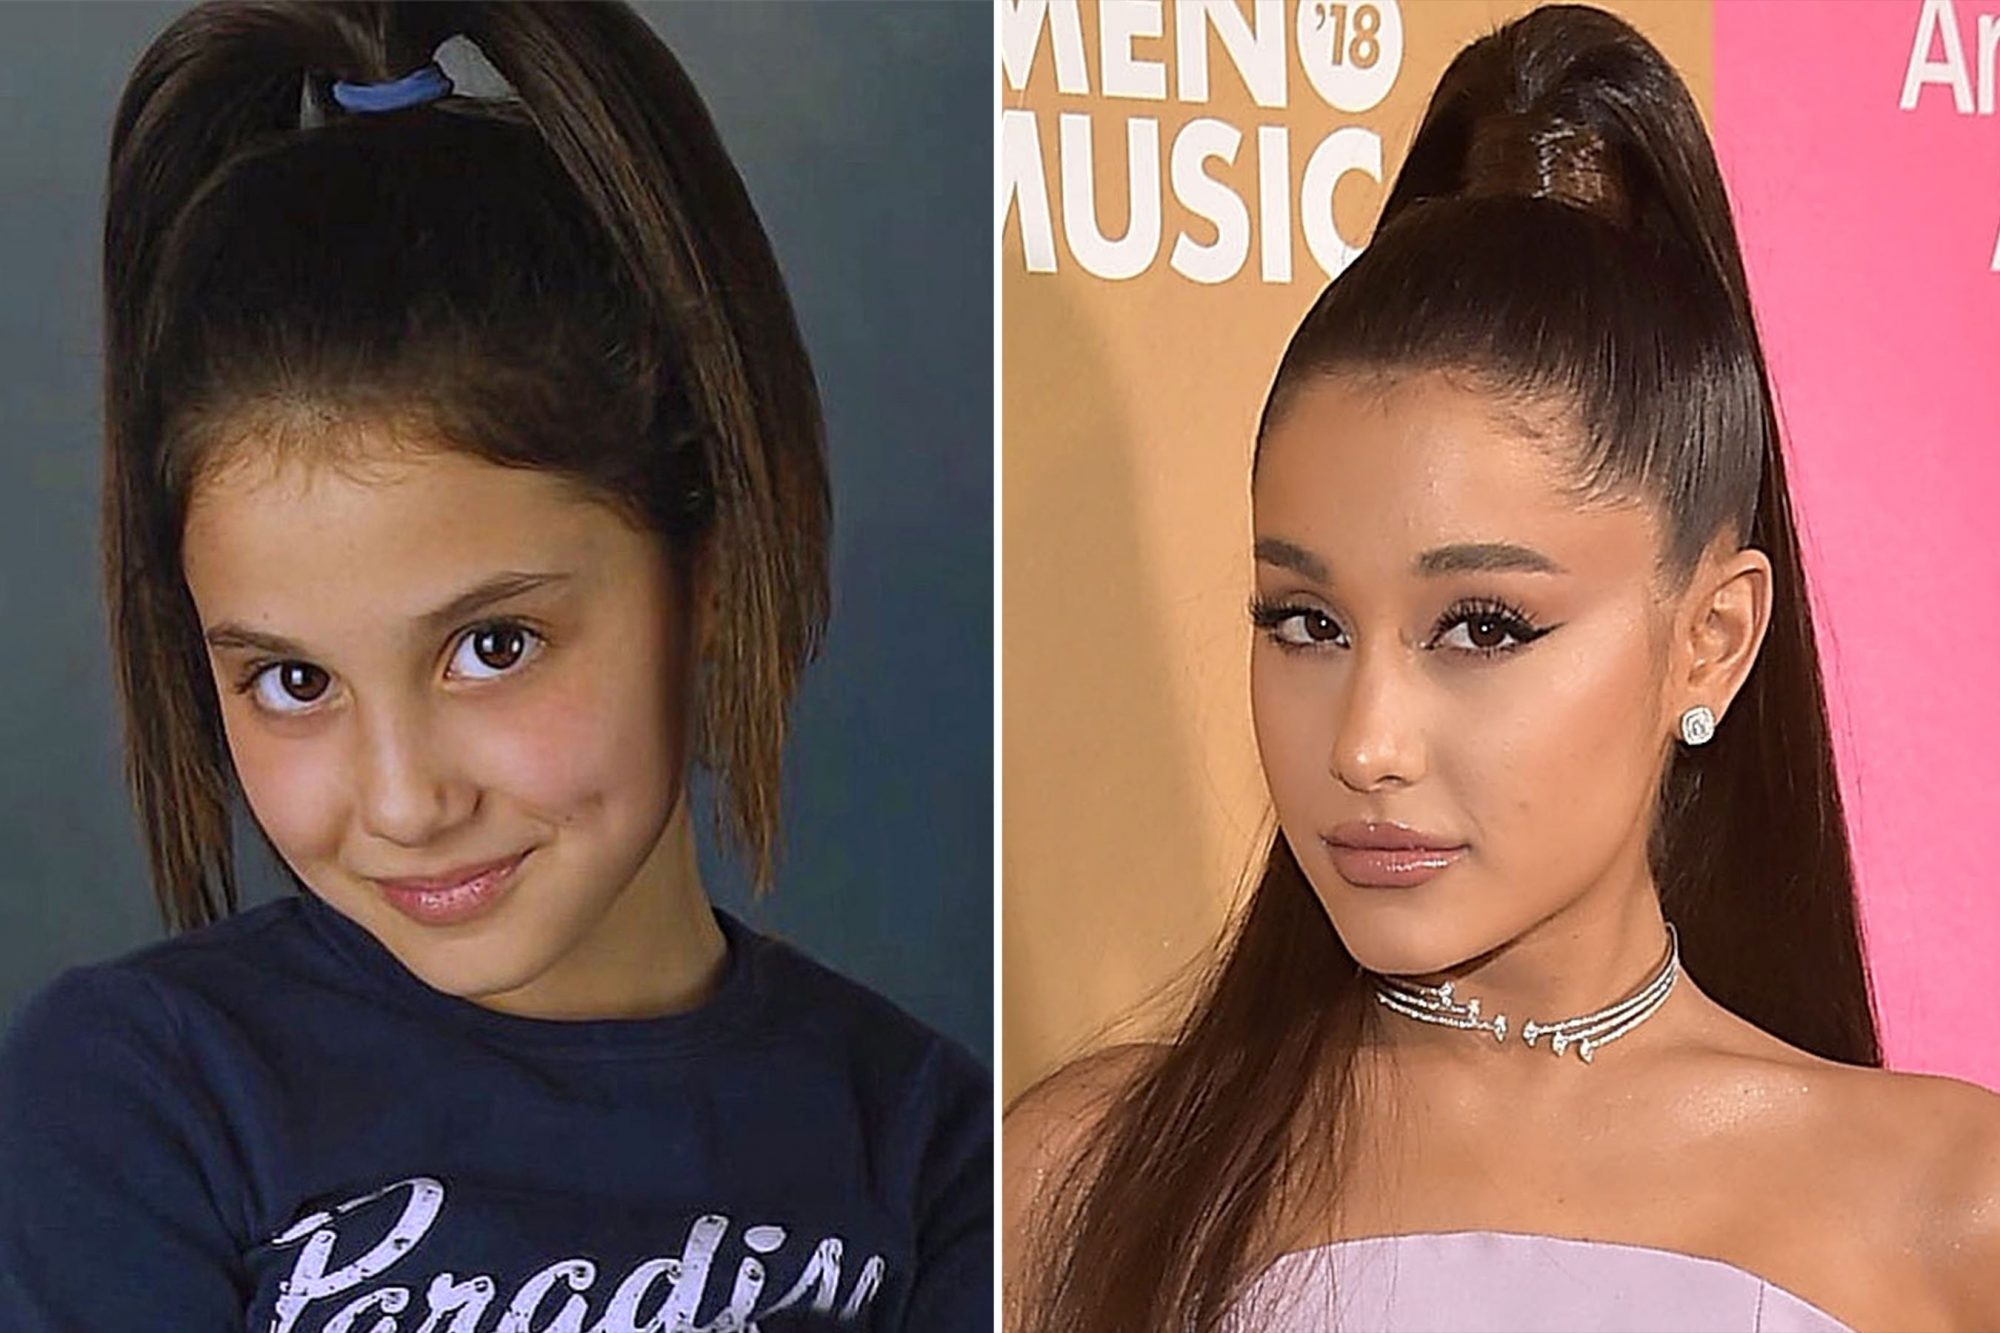 Ariana hair before and after